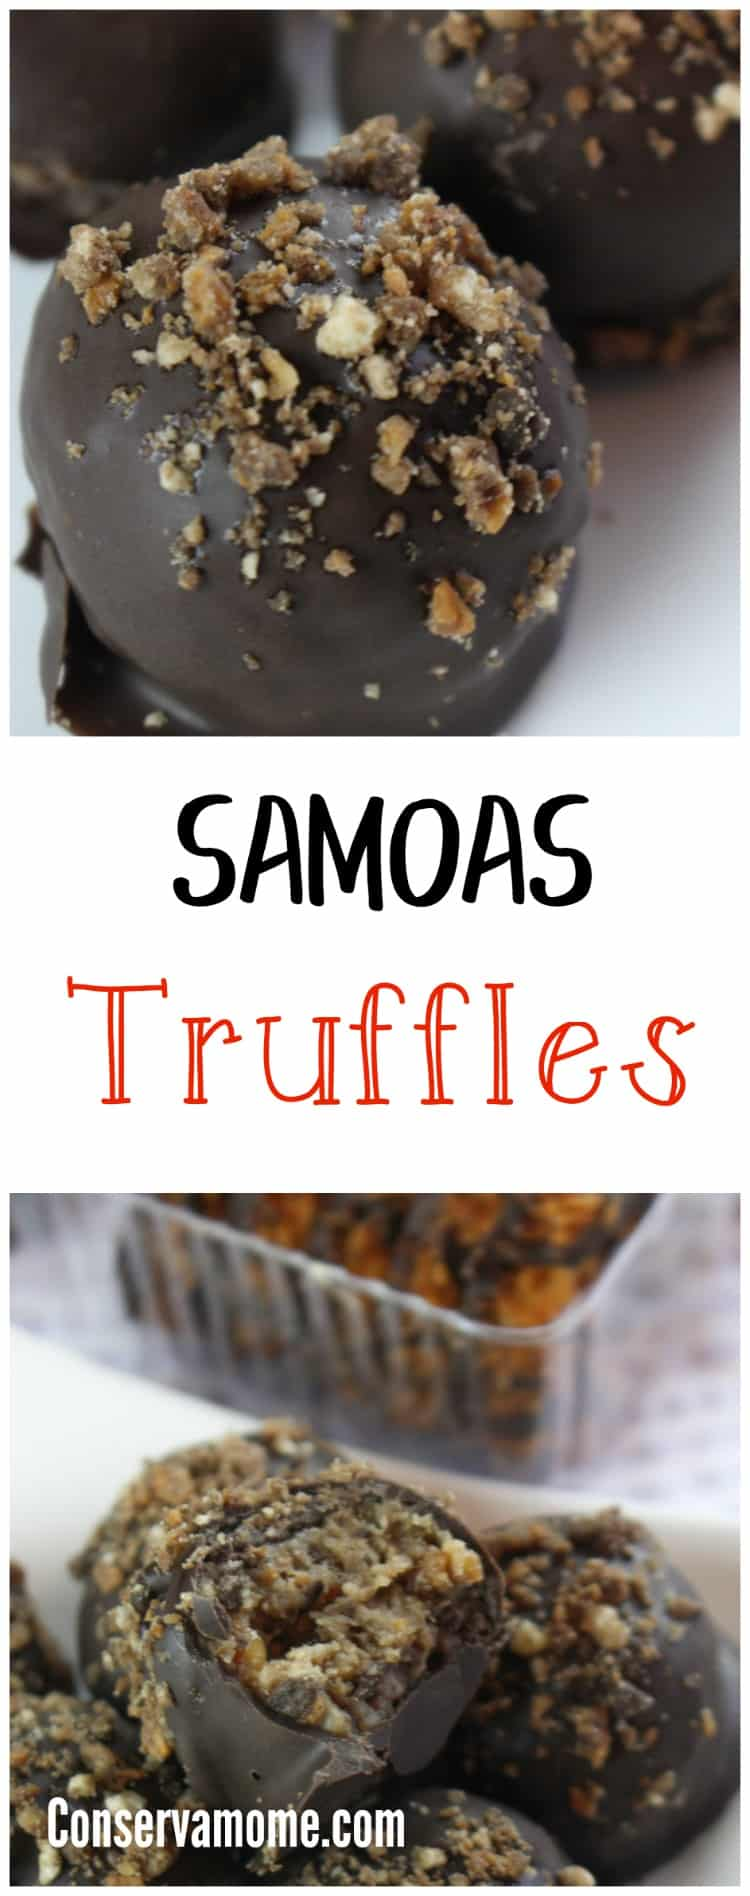 Do you love Samoas Girl scout cookies? Here's a fun recipe to make using those delicious popular girl scout cookies, Samoas Truffles!